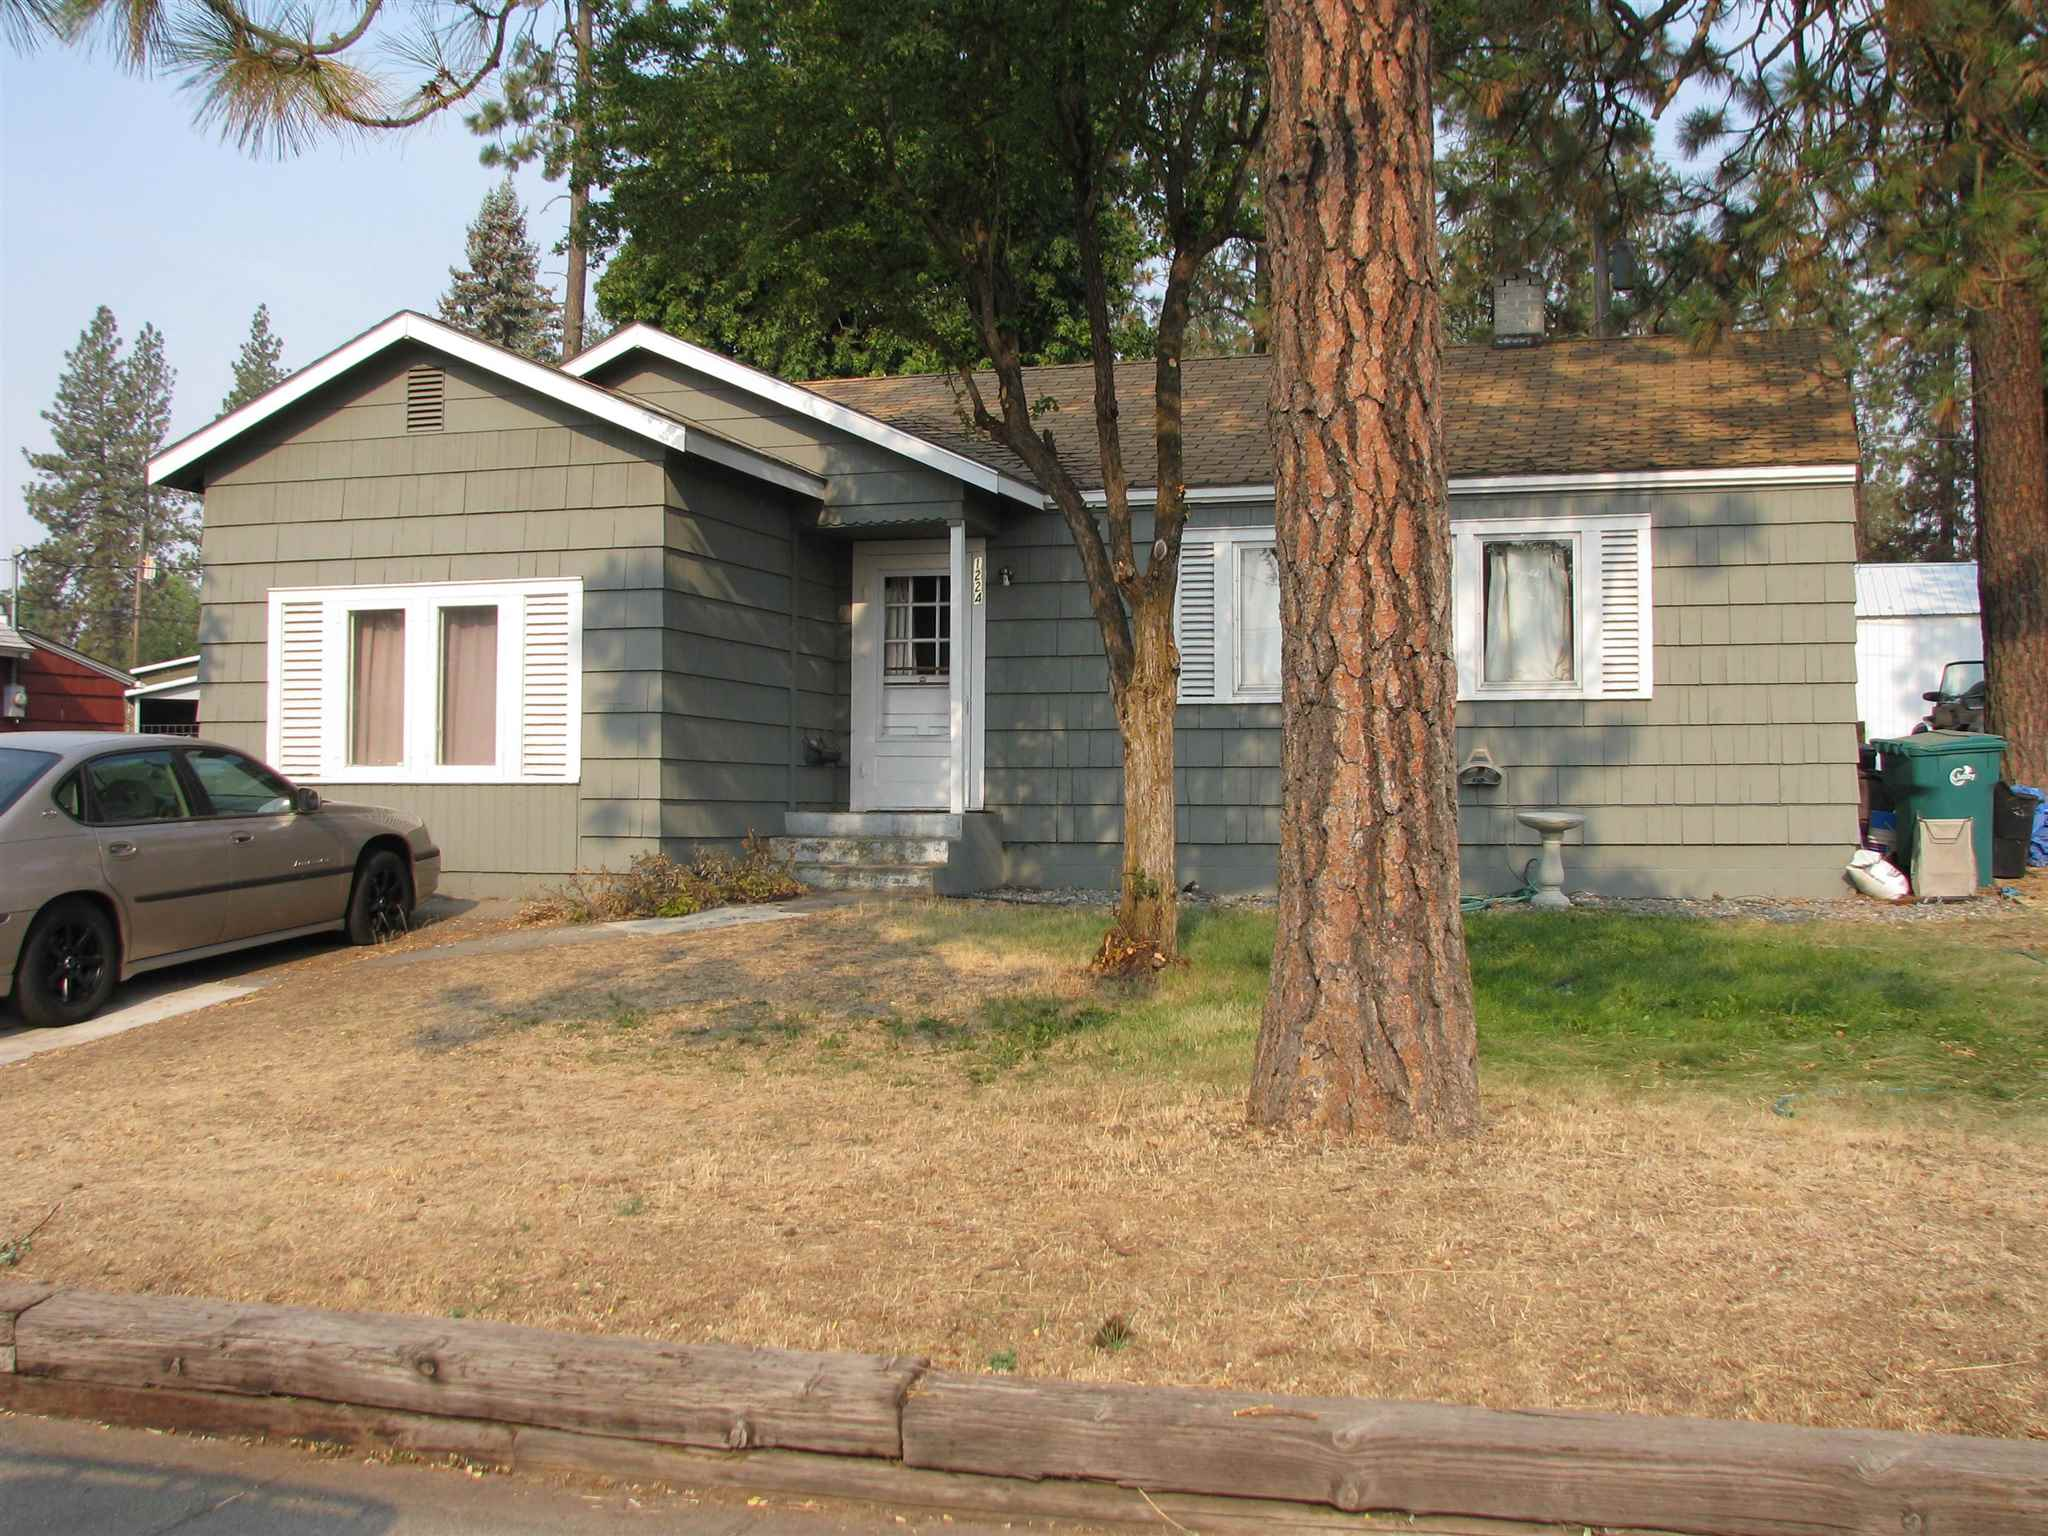 Great investment opportunity! Three-bedroom, one bath house on a double-sized lot close to Eastern Washington University. Detached one-car garage and large yard with fenced backyard. New paint this summer. This home has a great rental history with long-term tenants currently occupying it on a month-to-month basis. The once double lot is zoned multi-family 100 x 100 and has the potential to expand the house into a duplex or add a second multi-family unit on the property.